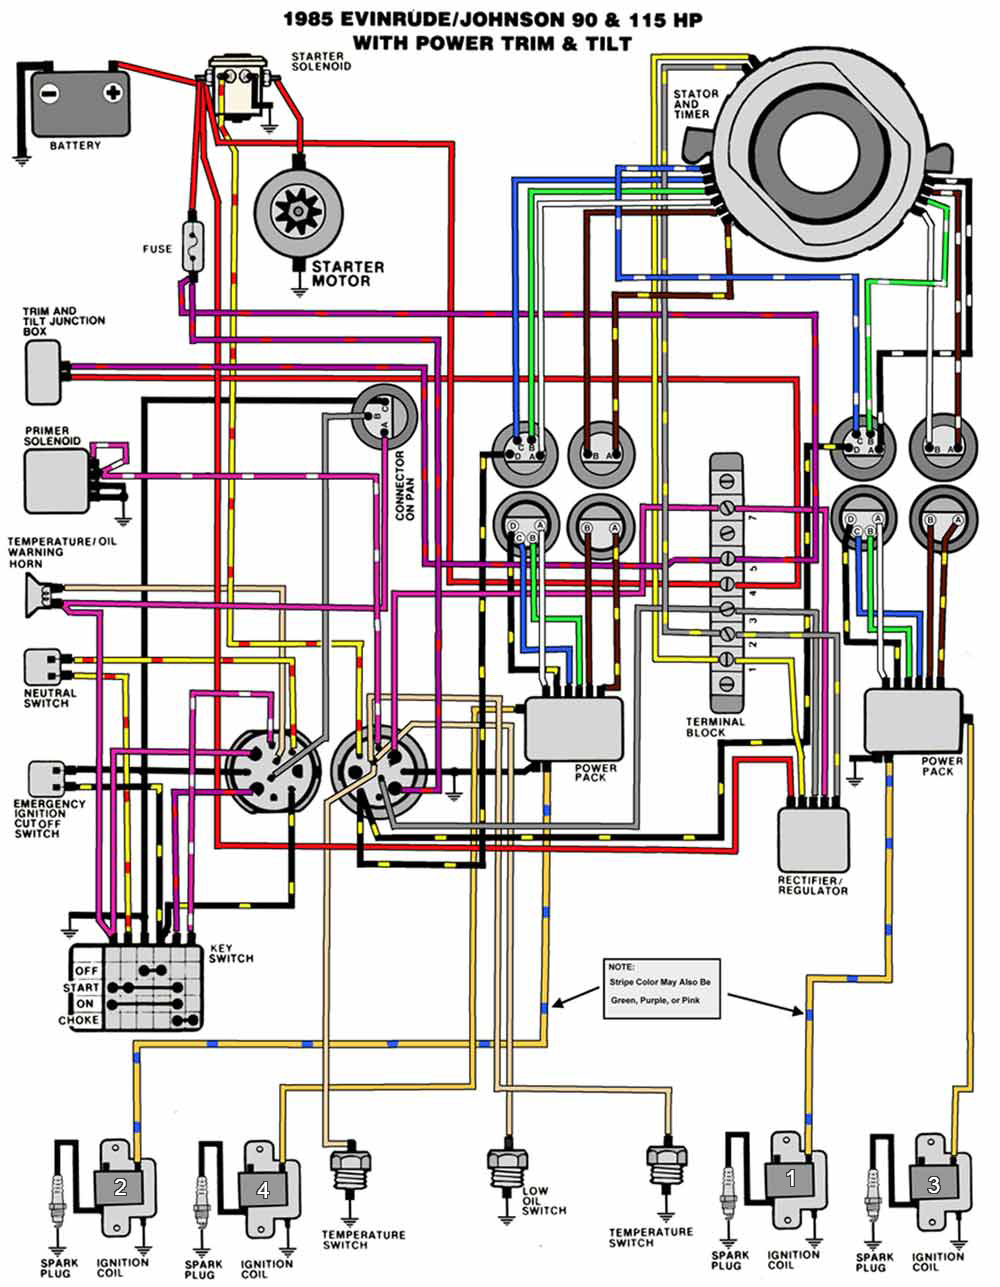 Maserati Biturbo Wiring Diagram Harness As 1984 Johnson 1980 Download Diagrams U2022 Rh Osomeweb Com